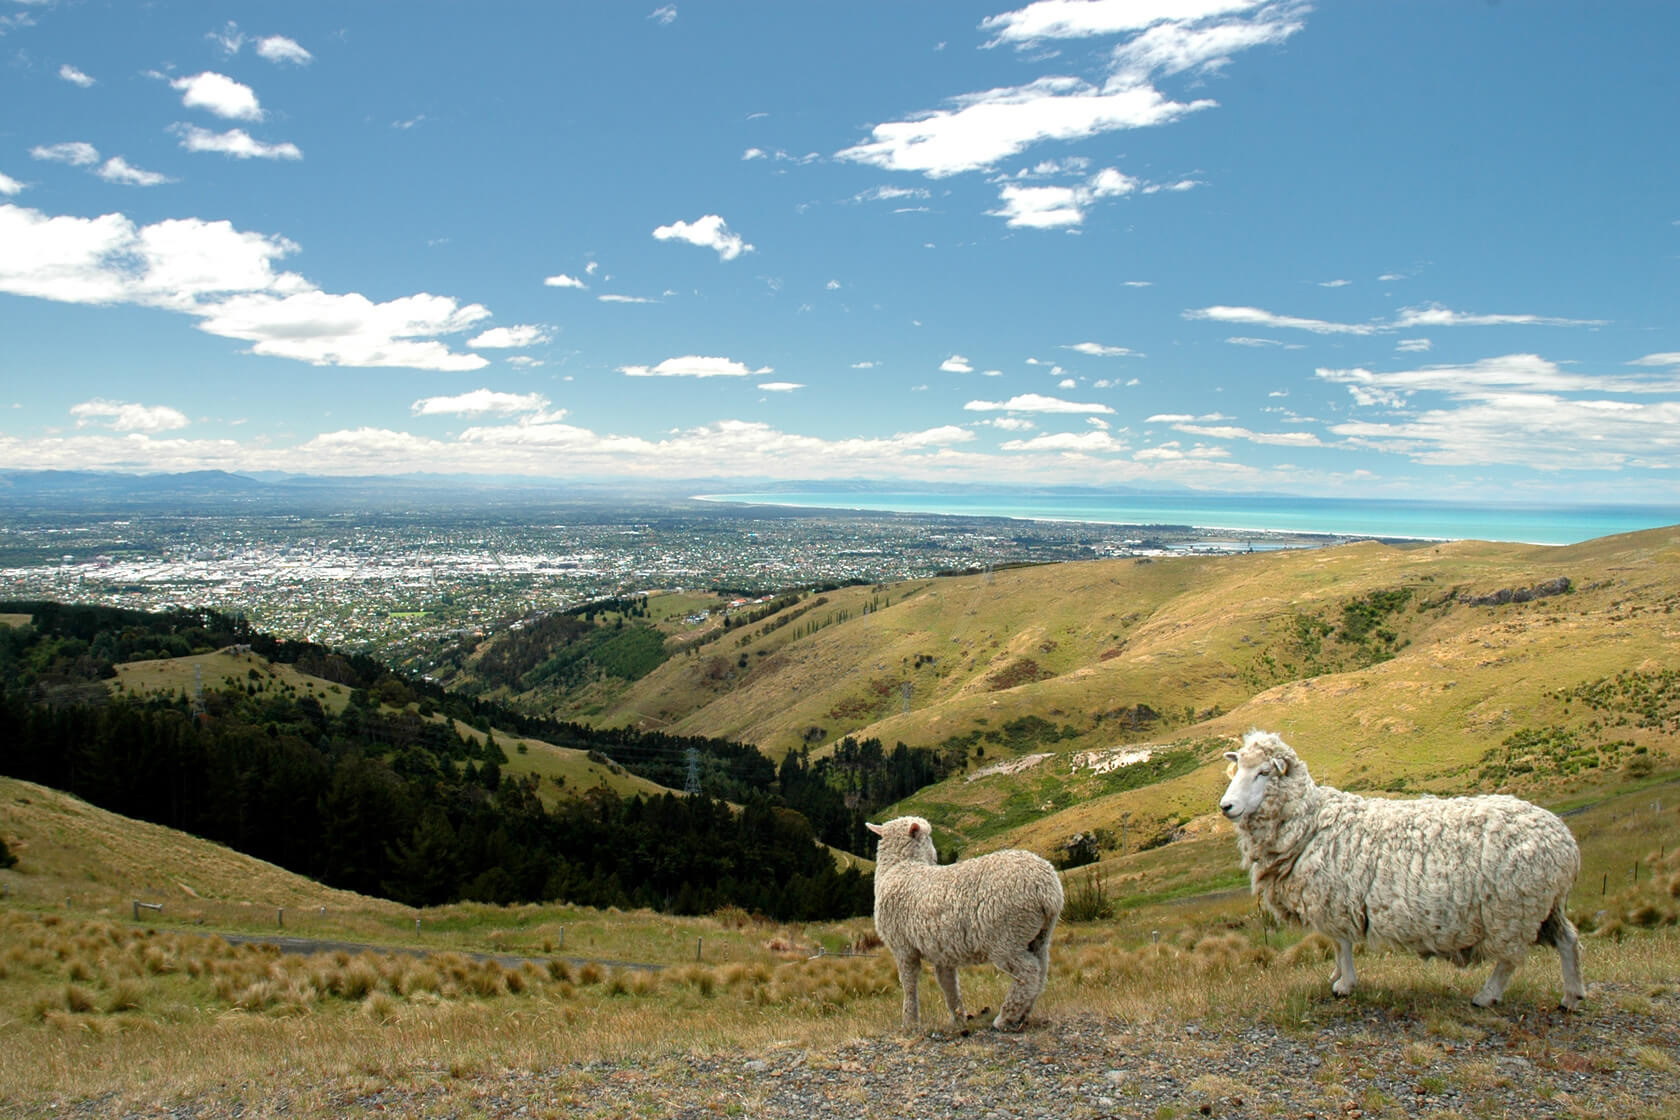 Two sheep on a hill overlooking Christchurch, New Zealand